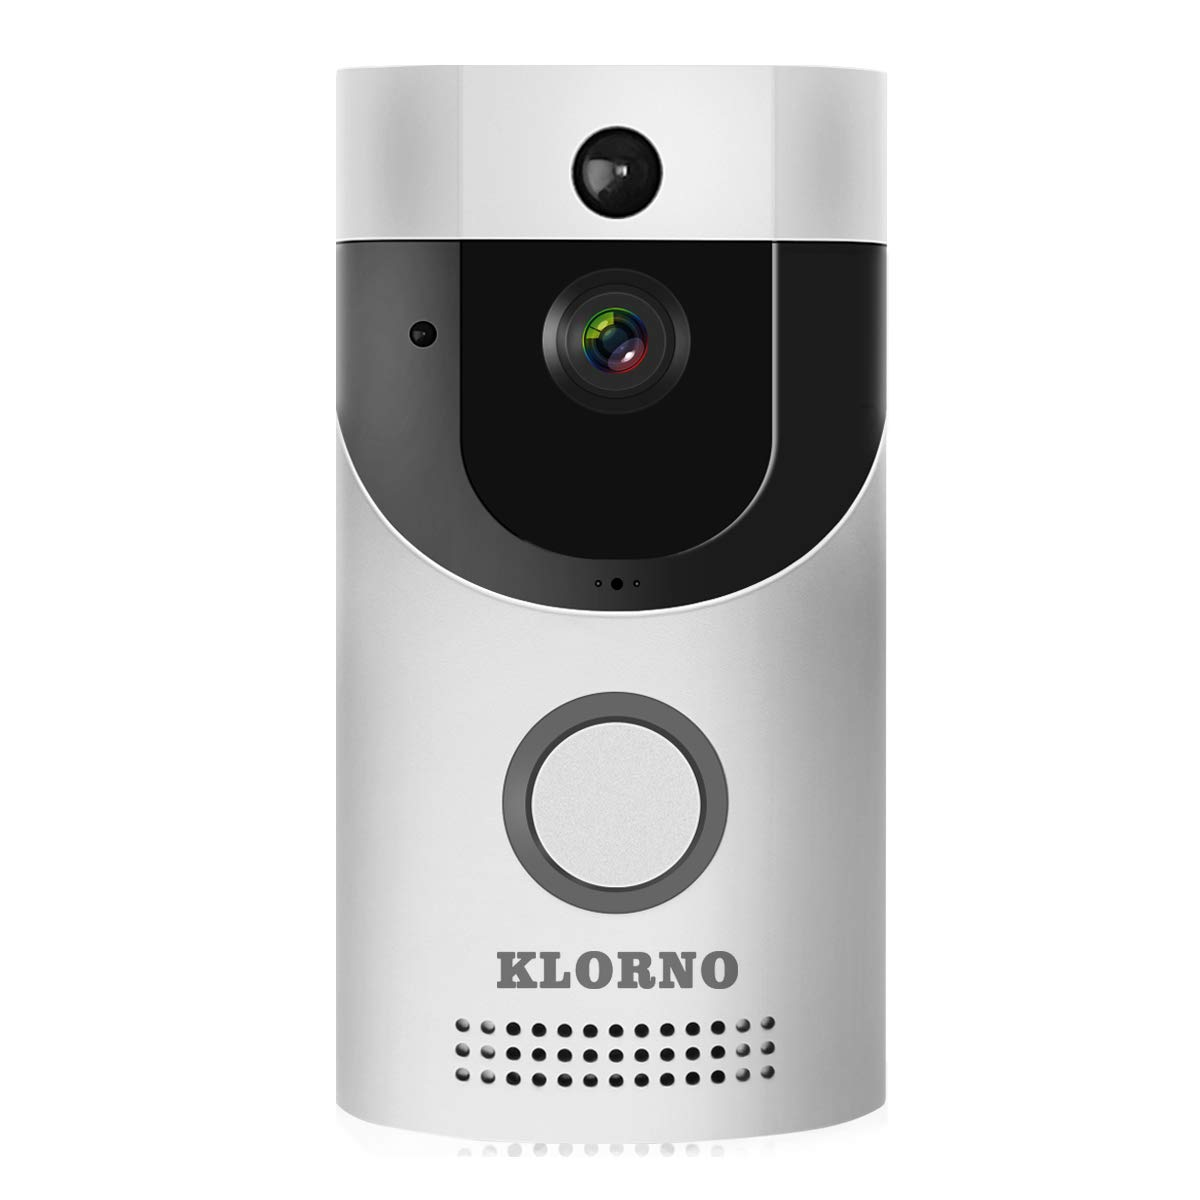 WIFI Video Doorbell, Smart Doorbell HD Security Camera with Chime, Real-Time Two-Way Talk and Video, Night Vision, PIR Motion Detection, ultra-slim design and App Control for IOS and An (Silver) by KLORNO (Image #8)